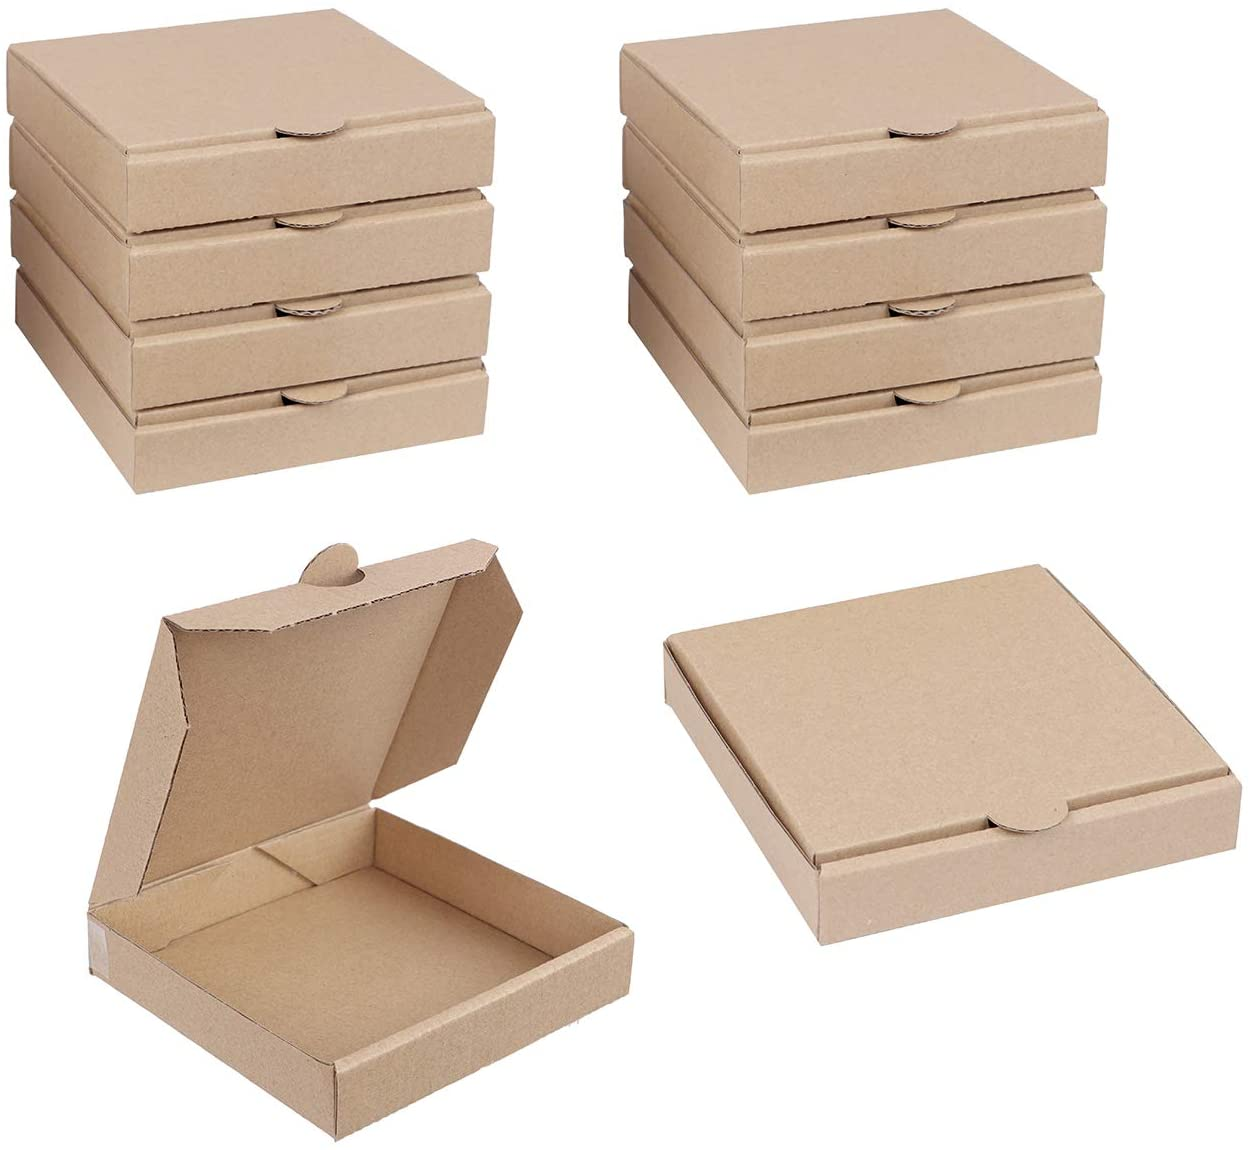 Spec101 Kraft Mini Pizza Boxes, 5 Inch for Cookies, Party Favor, Craft- Food Safe Miniature Cardboard Box 10-Pack